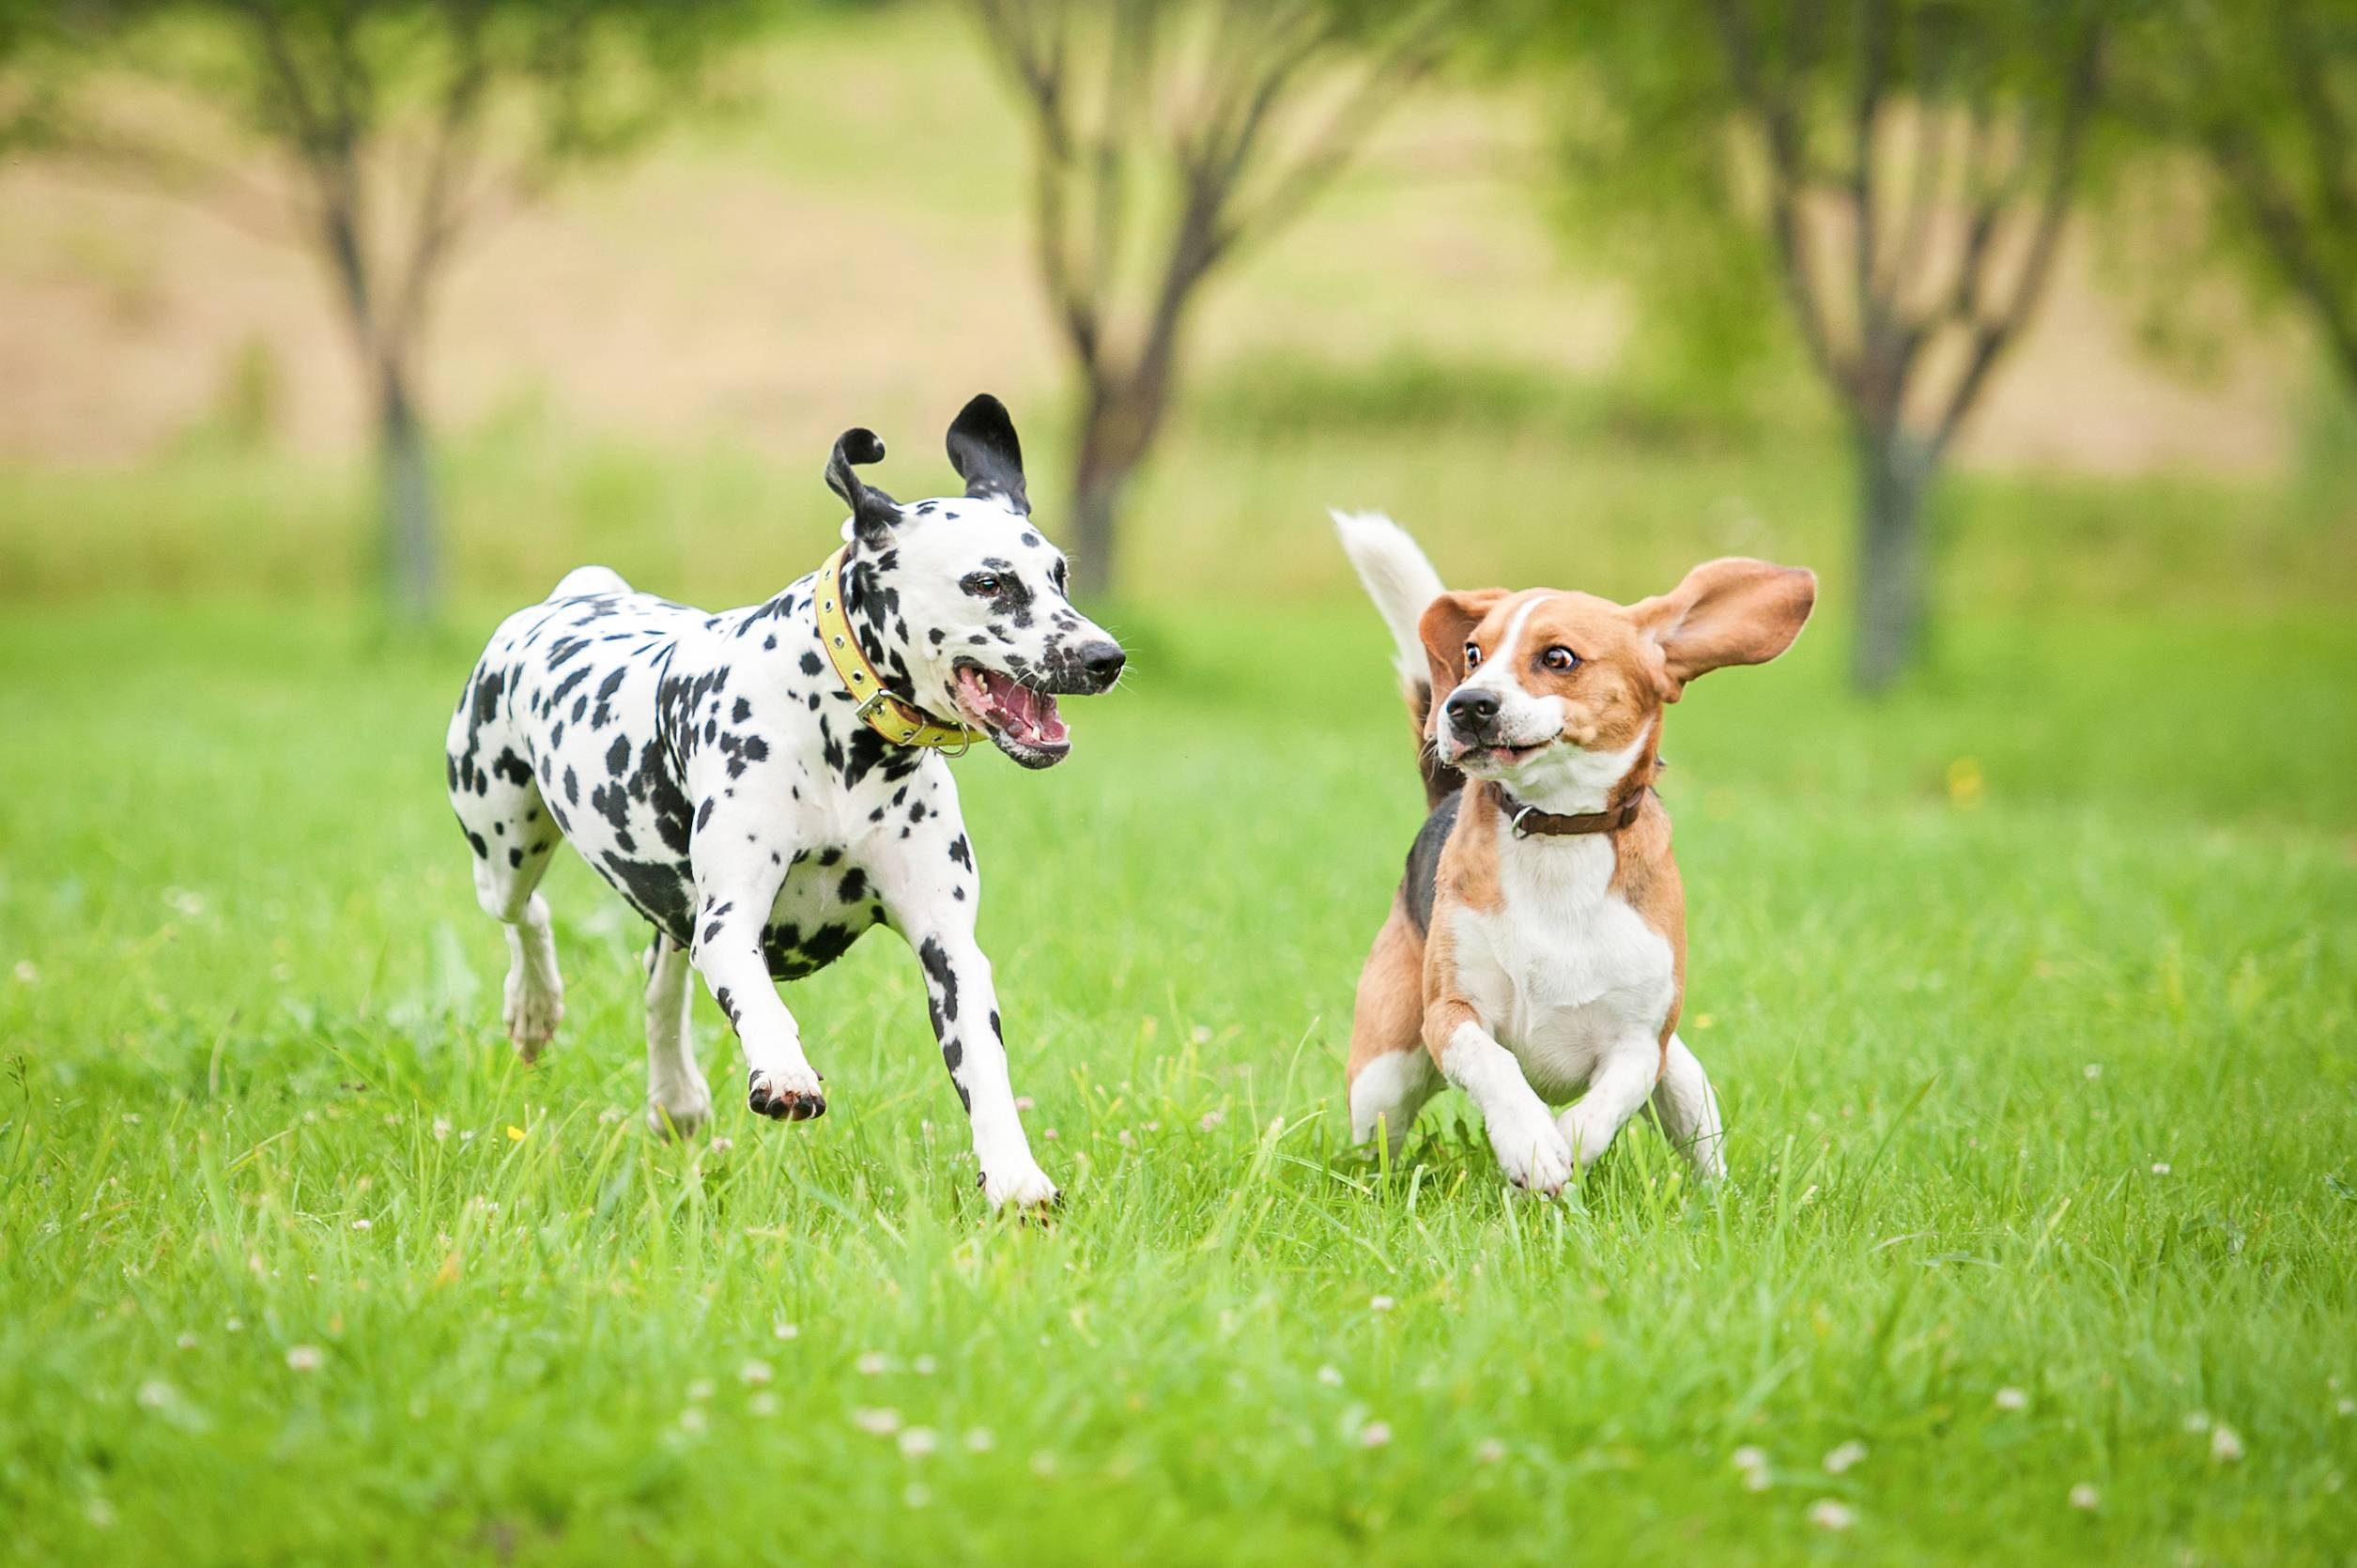 Hemp Multivitamin Bites - two dogs playing in a field